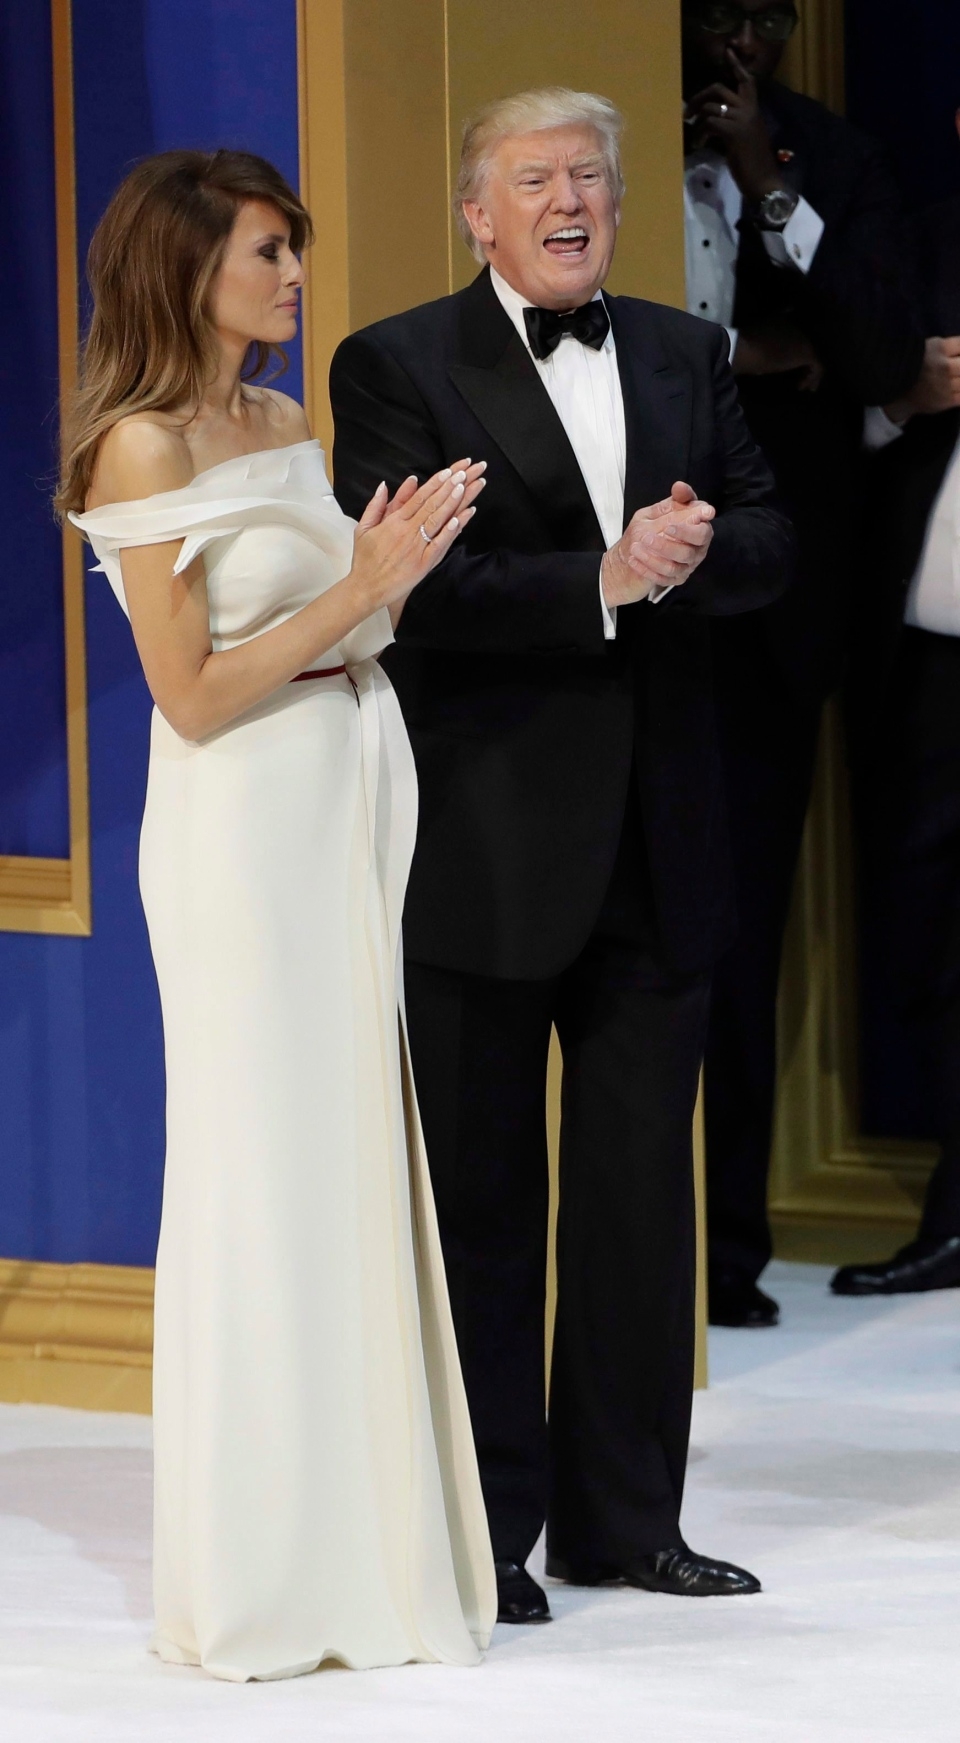 Melania Trump donates inaugural gown to Smithsonian | Lifestyle from ...